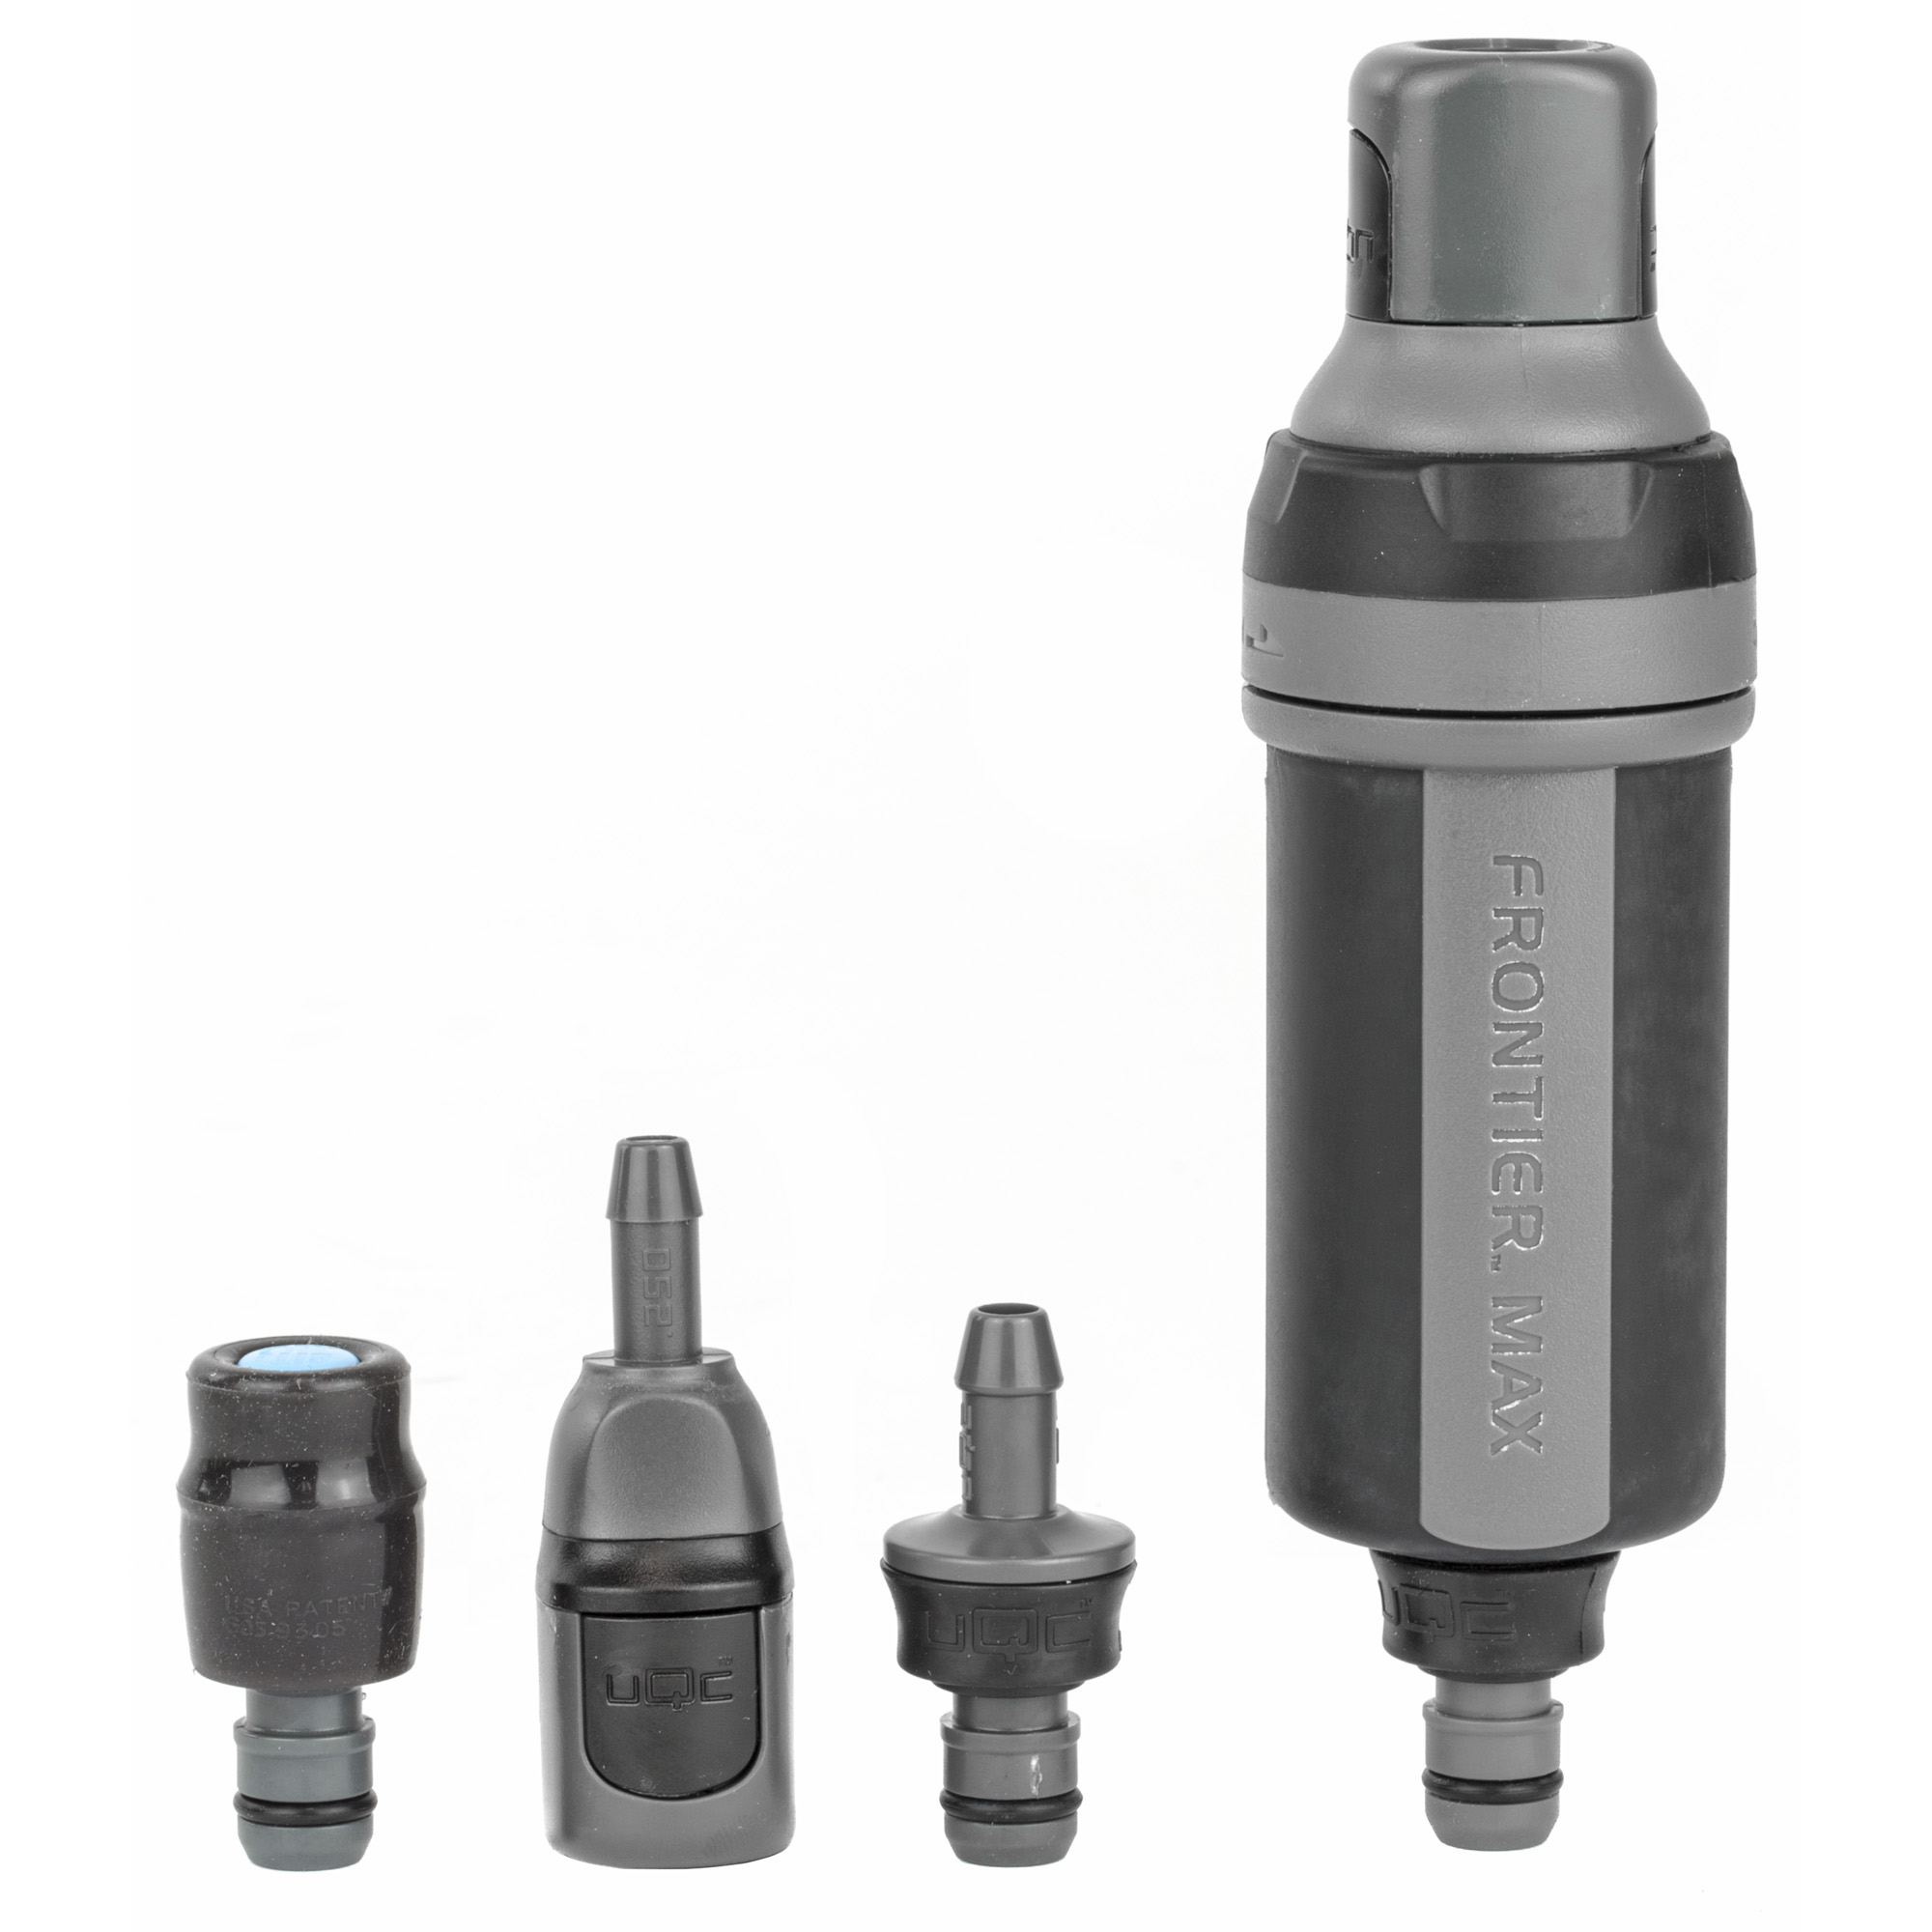 """The Aquamira Frontier Max is the only outdoor and tactical filter system"""" good for 1000 gallons of field use. Series IV Connectivity lets you customize the Max with any Series IV filter cartridge. UQC fittings allow you to connect the Max with the Aquamira hydration engine and pressurize for on-the-go"""" plug-and-play in-line filtration anywhere. The Aquamira Frontier Max is the most versatile inline filter available on the market today. The Aquamira Series IV GRN Line Backcountry filter included with the Max is good for the removal of bacteria"""" Cryptosporidium and Giardia for 1000 gallons of use. It proudly boasts a flow rate of up to 800 ml/min for immediate thirst protection. Aquamira Series IV connectivity allows you to customize the Max with any Series IV filter cartridge for use in emergencies"""" international travel"""" backcountry excursions or anywhere the water may be of questionable biological or chemical quality. The patented UQC connectors make it simple to plug into any hydration pack or inline system without a need to replace your current connectors. Plug in the patented Bite Me valve to convert your MAX into a straw filter. For a complete"""" high-performance system combine the Aquamira Frontier Max with the award winning Geigerrig pressurized hydration engine for easy"""" on-the-go"""" plug-and-play in-line water filtration anywhere and anytime you need it."""